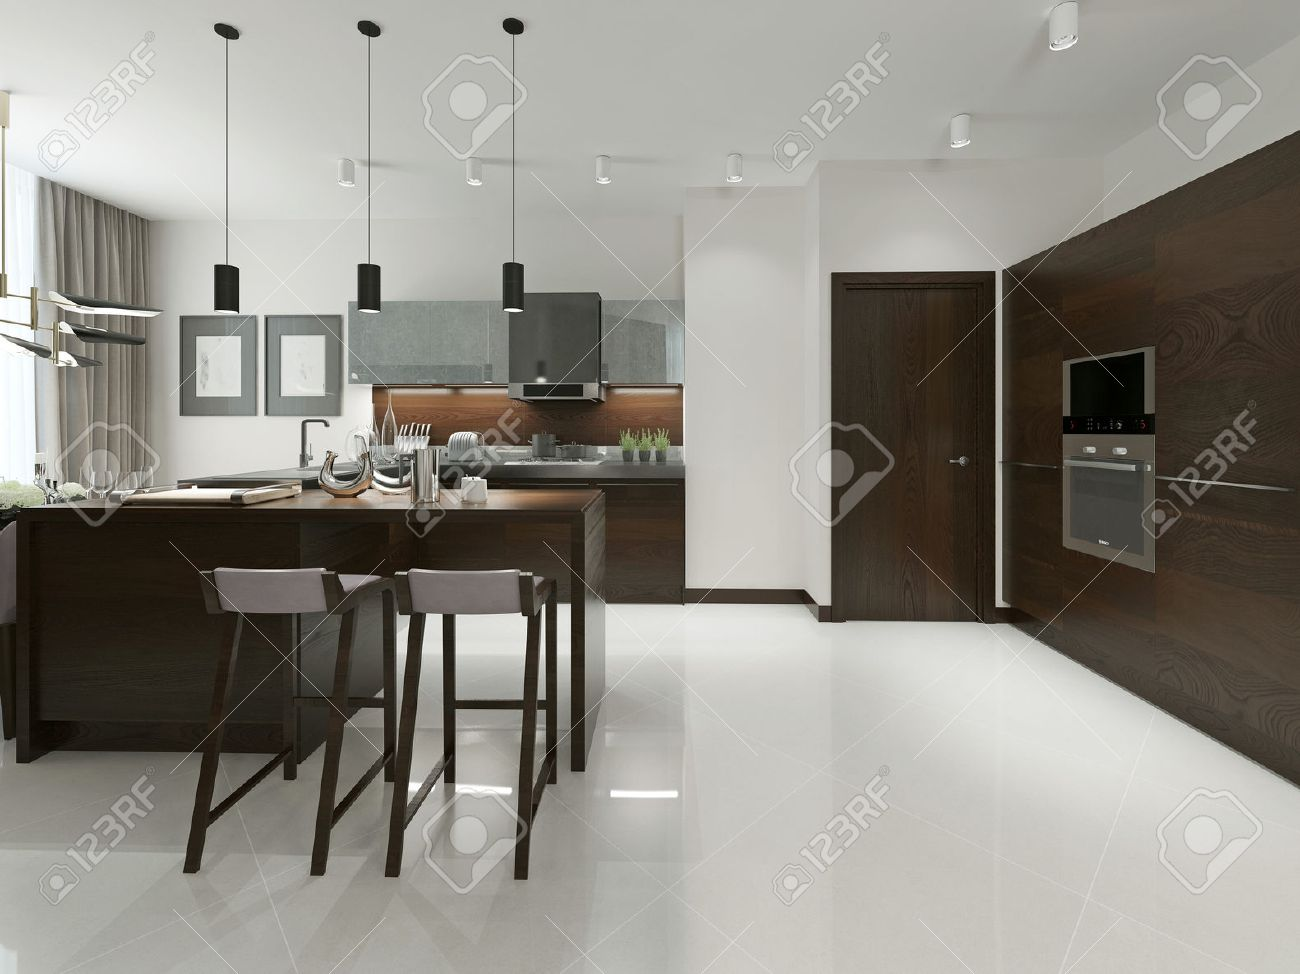 Metal Kitchen Furniture Interior Of Modern Kitchen With Bar And Bar Stools Kitchen